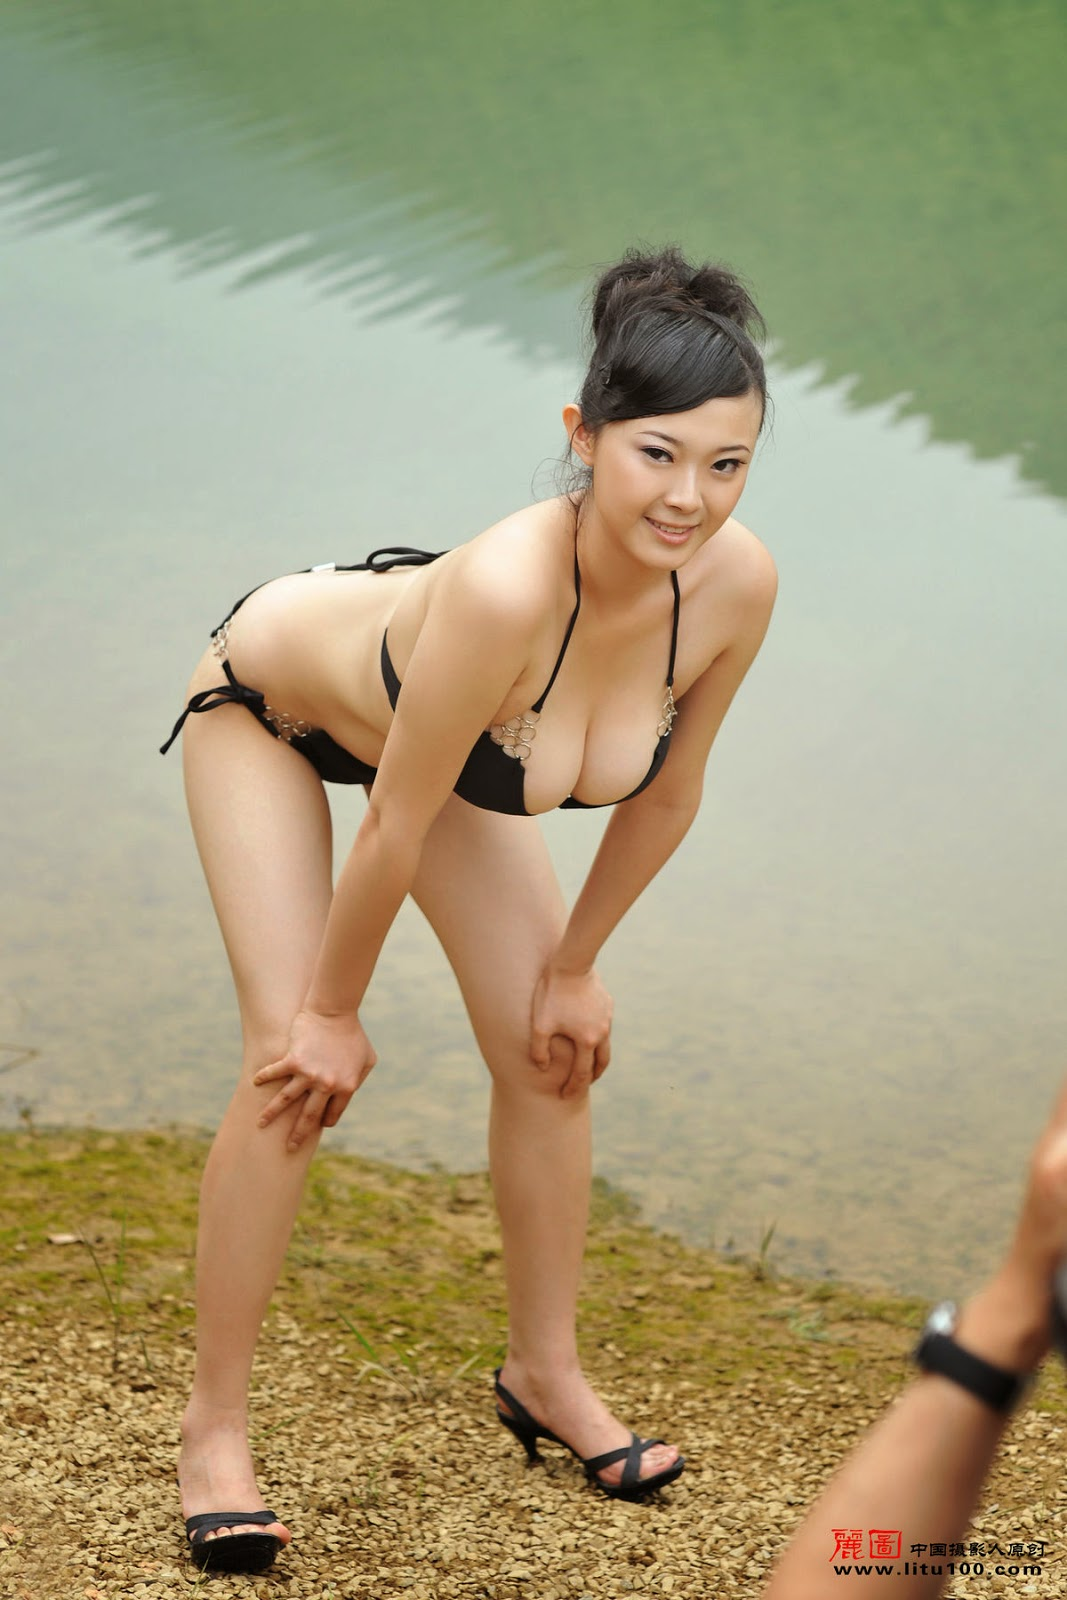 litu100 Chinese Nude Model Bing Yi [Litu100] | chinesenudeart photos - Chinese Nude Art Photos